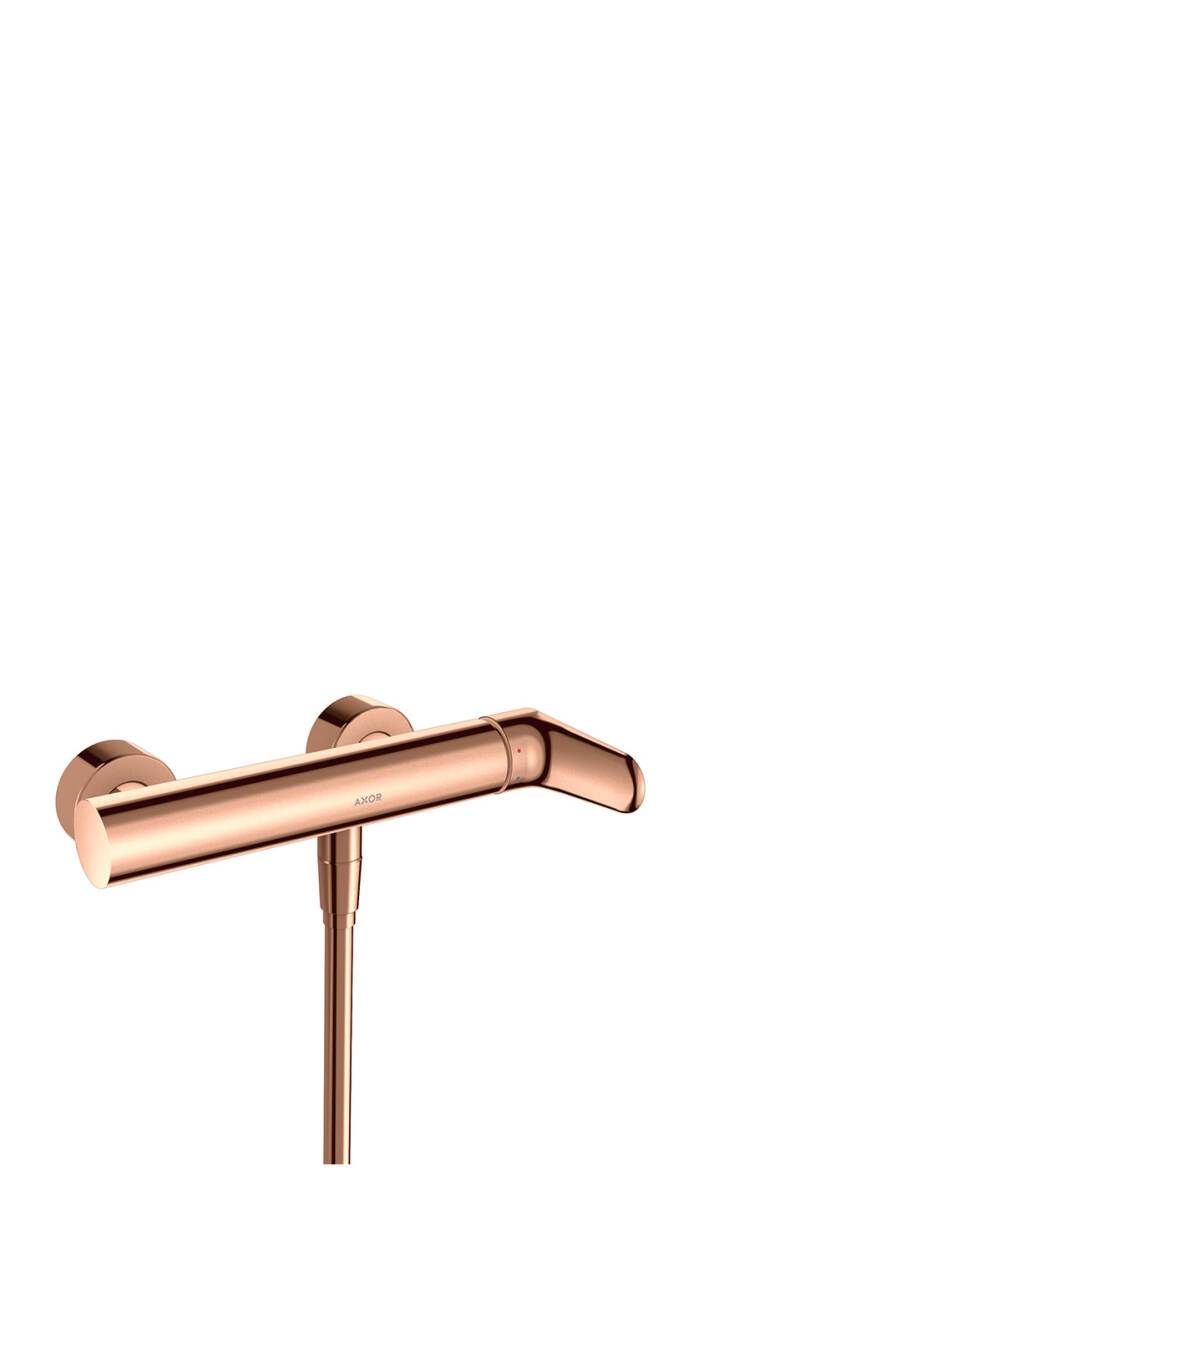 Single lever shower mixer for exposed installation, Polished Red Gold, 34620300